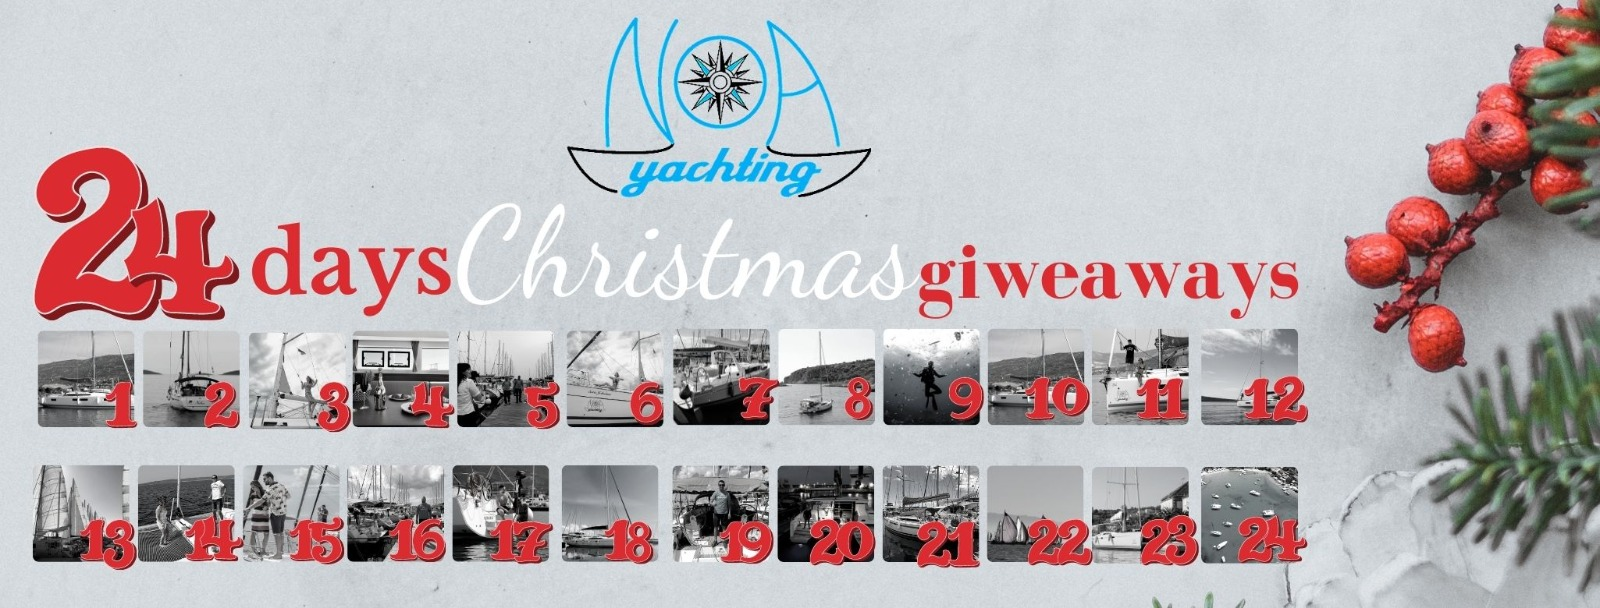 24 days of Christmas giveaways